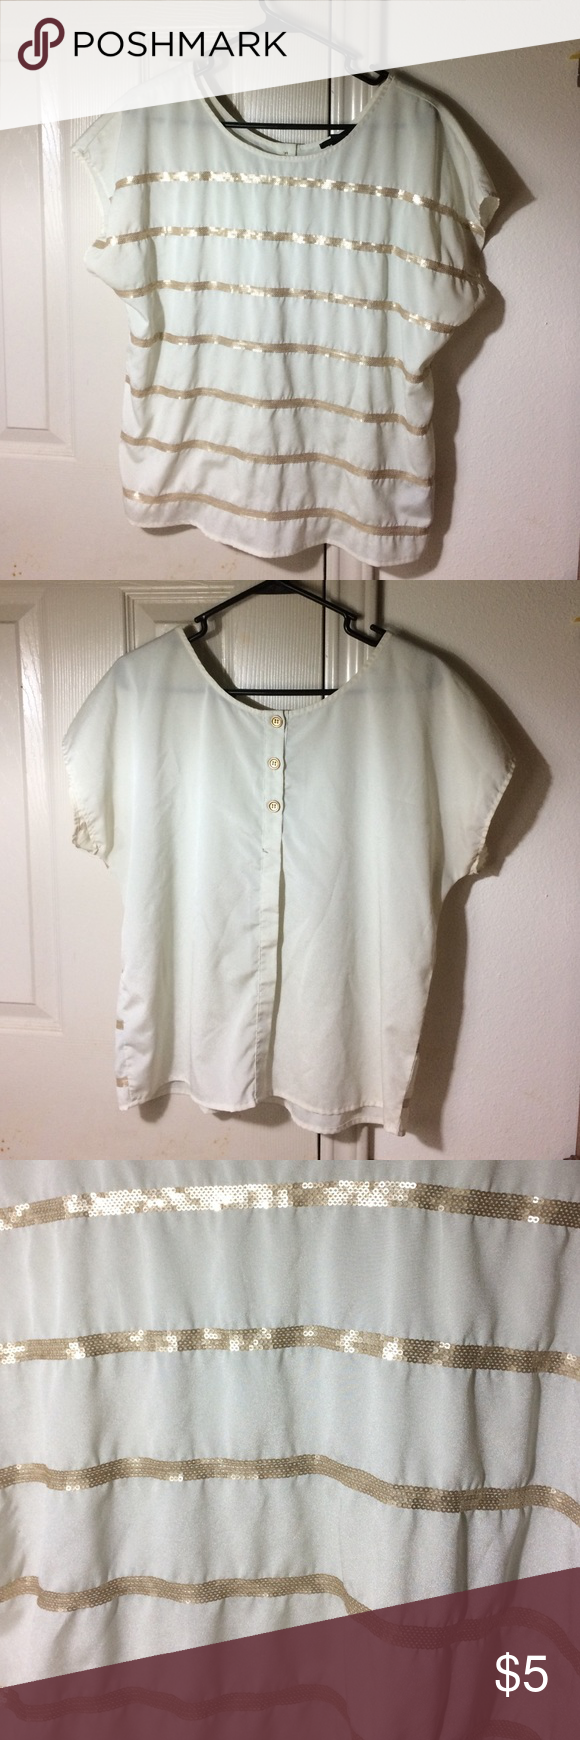 Forever 21 off white blouse w/ gold sequin strips Classy looking blouse with gold sequins and buttons on the back. Made out of 100% polyester, only worn once, like brand new. It's a size small in plus size. Forever 21 Tops Blouses